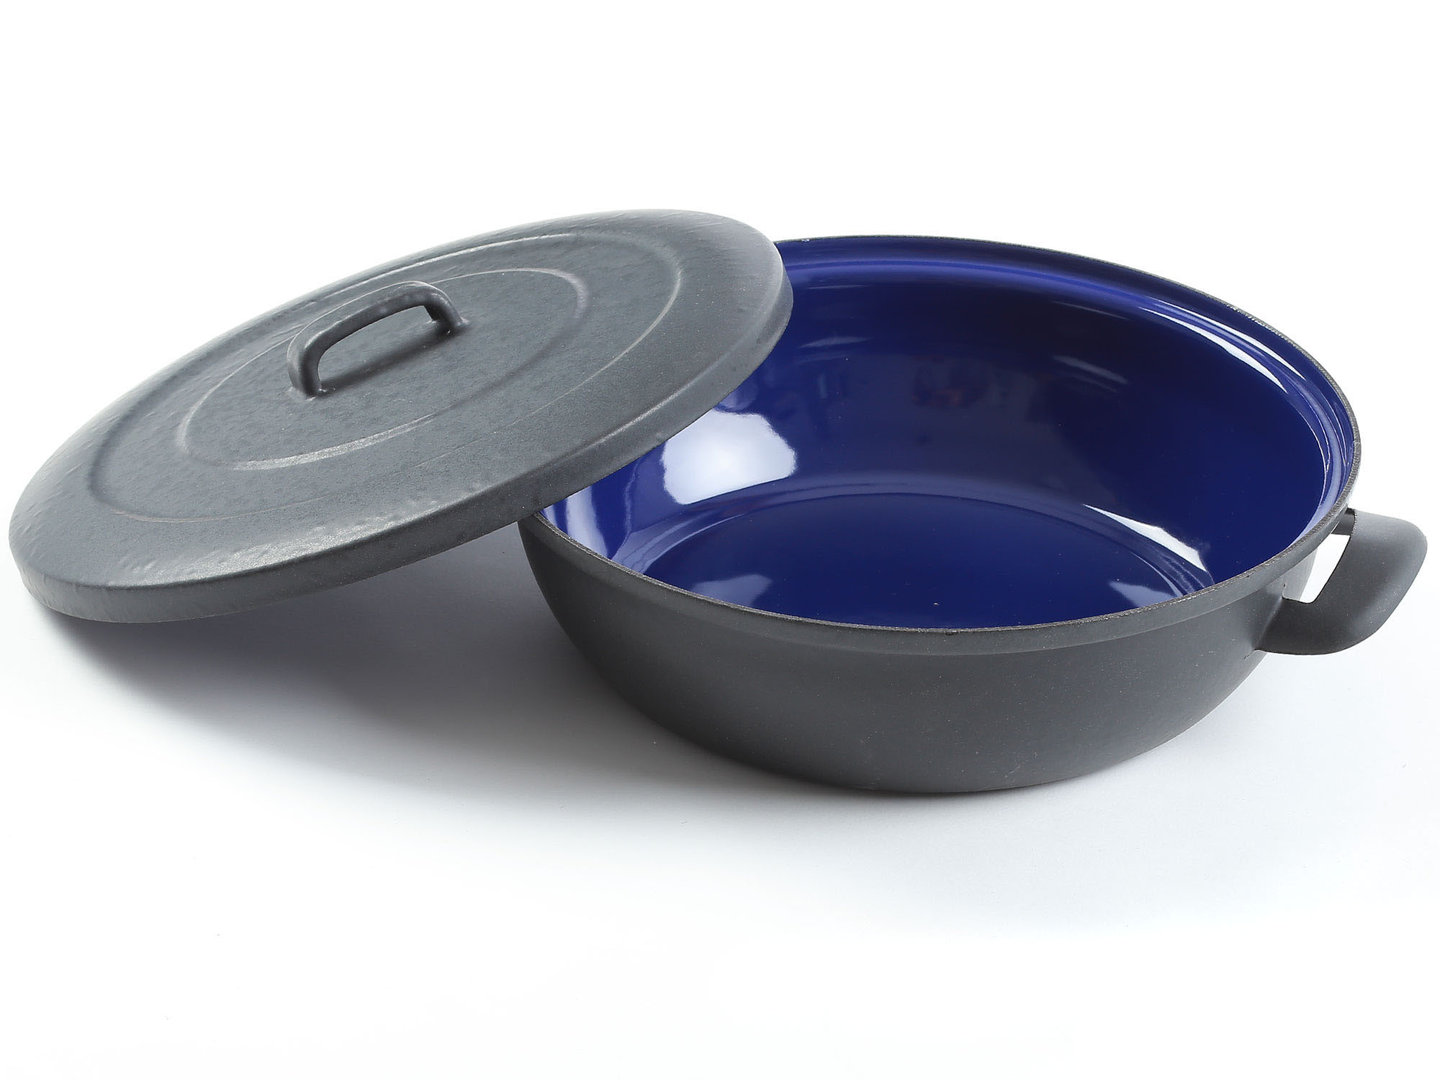 BELIS shallow casserole enameled steel STABIL EXTRA 28 cm with lid